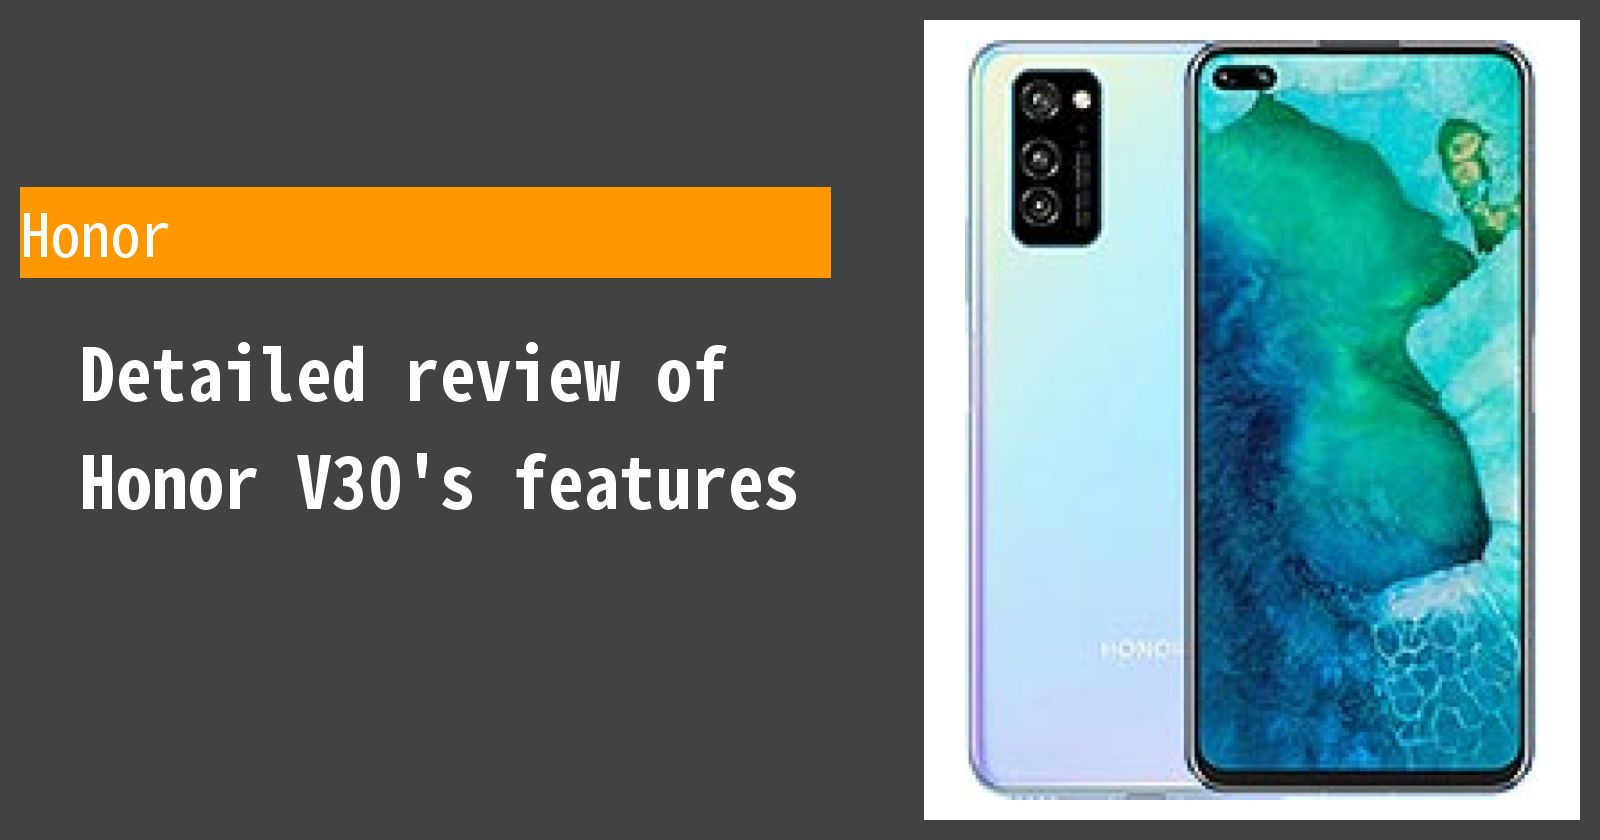 Detailed review of Honor V30's features